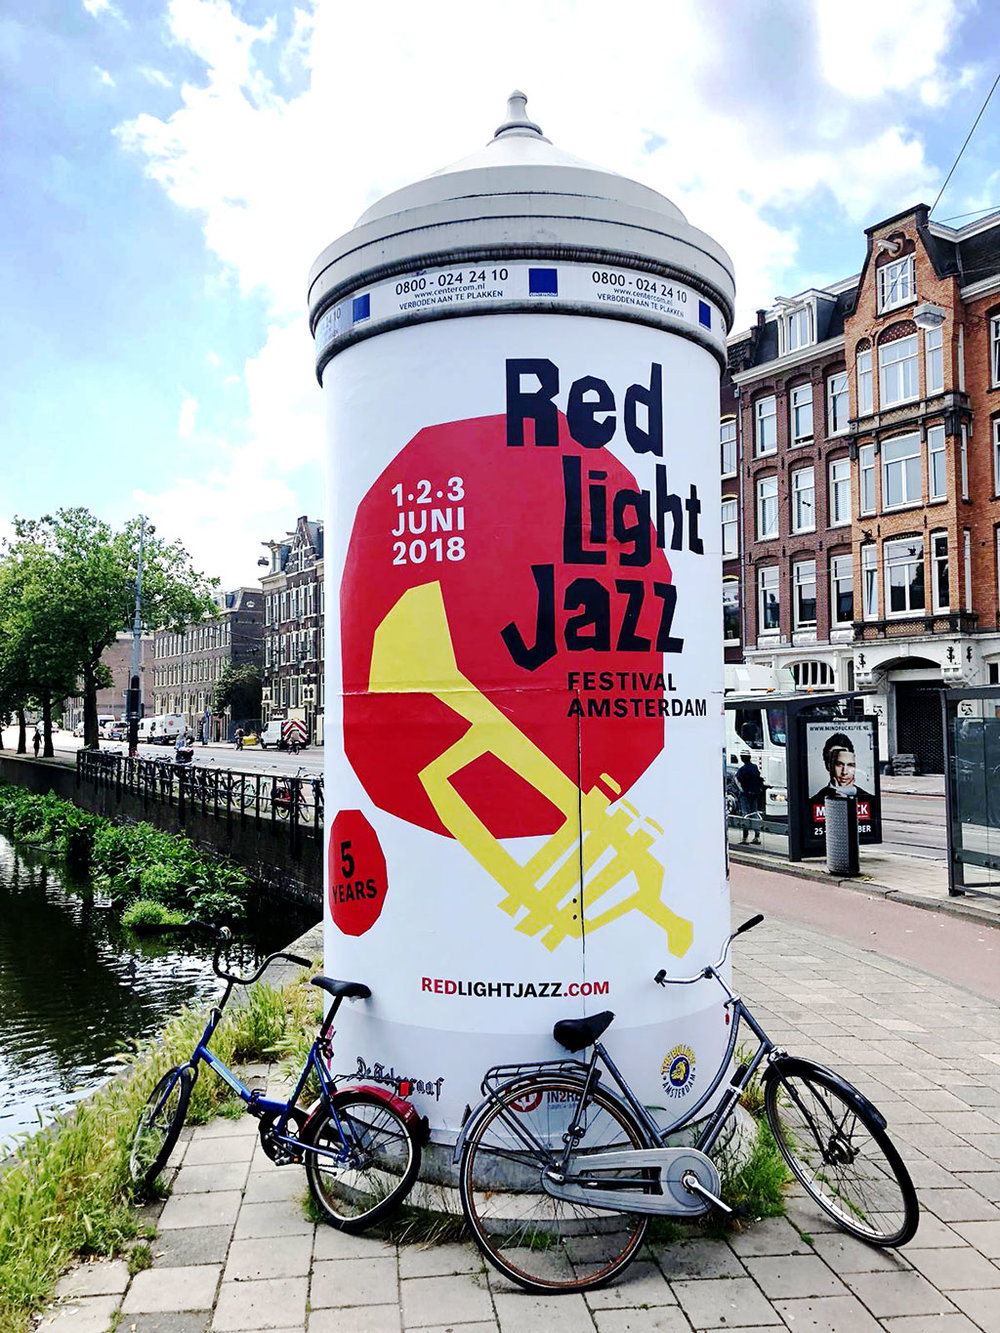 Branding &identity design - Logo and brand identity for the jazz festival in the red light district of Amsterdam. This fifth anniversary of Red Light Jazz focusses on the trumpet and legendary jazz trumpet player Chet Baker who died 30 years ago in Amsterdam.